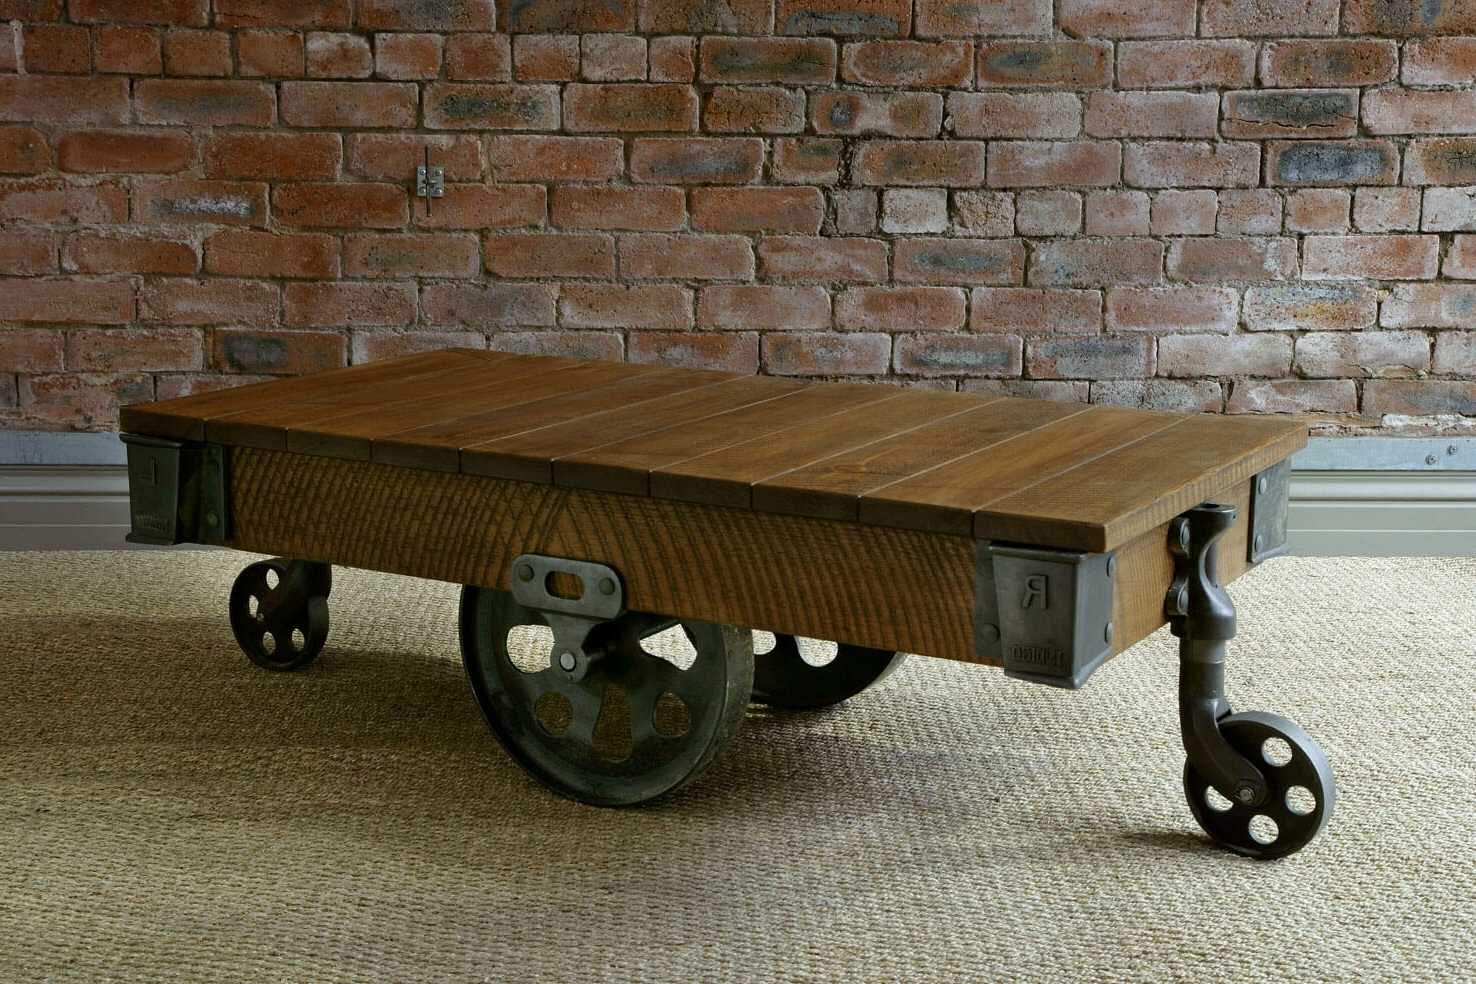 Rustic Wood Coffee Tables Handmade From Solid Oak Planks (View 4 of 20)